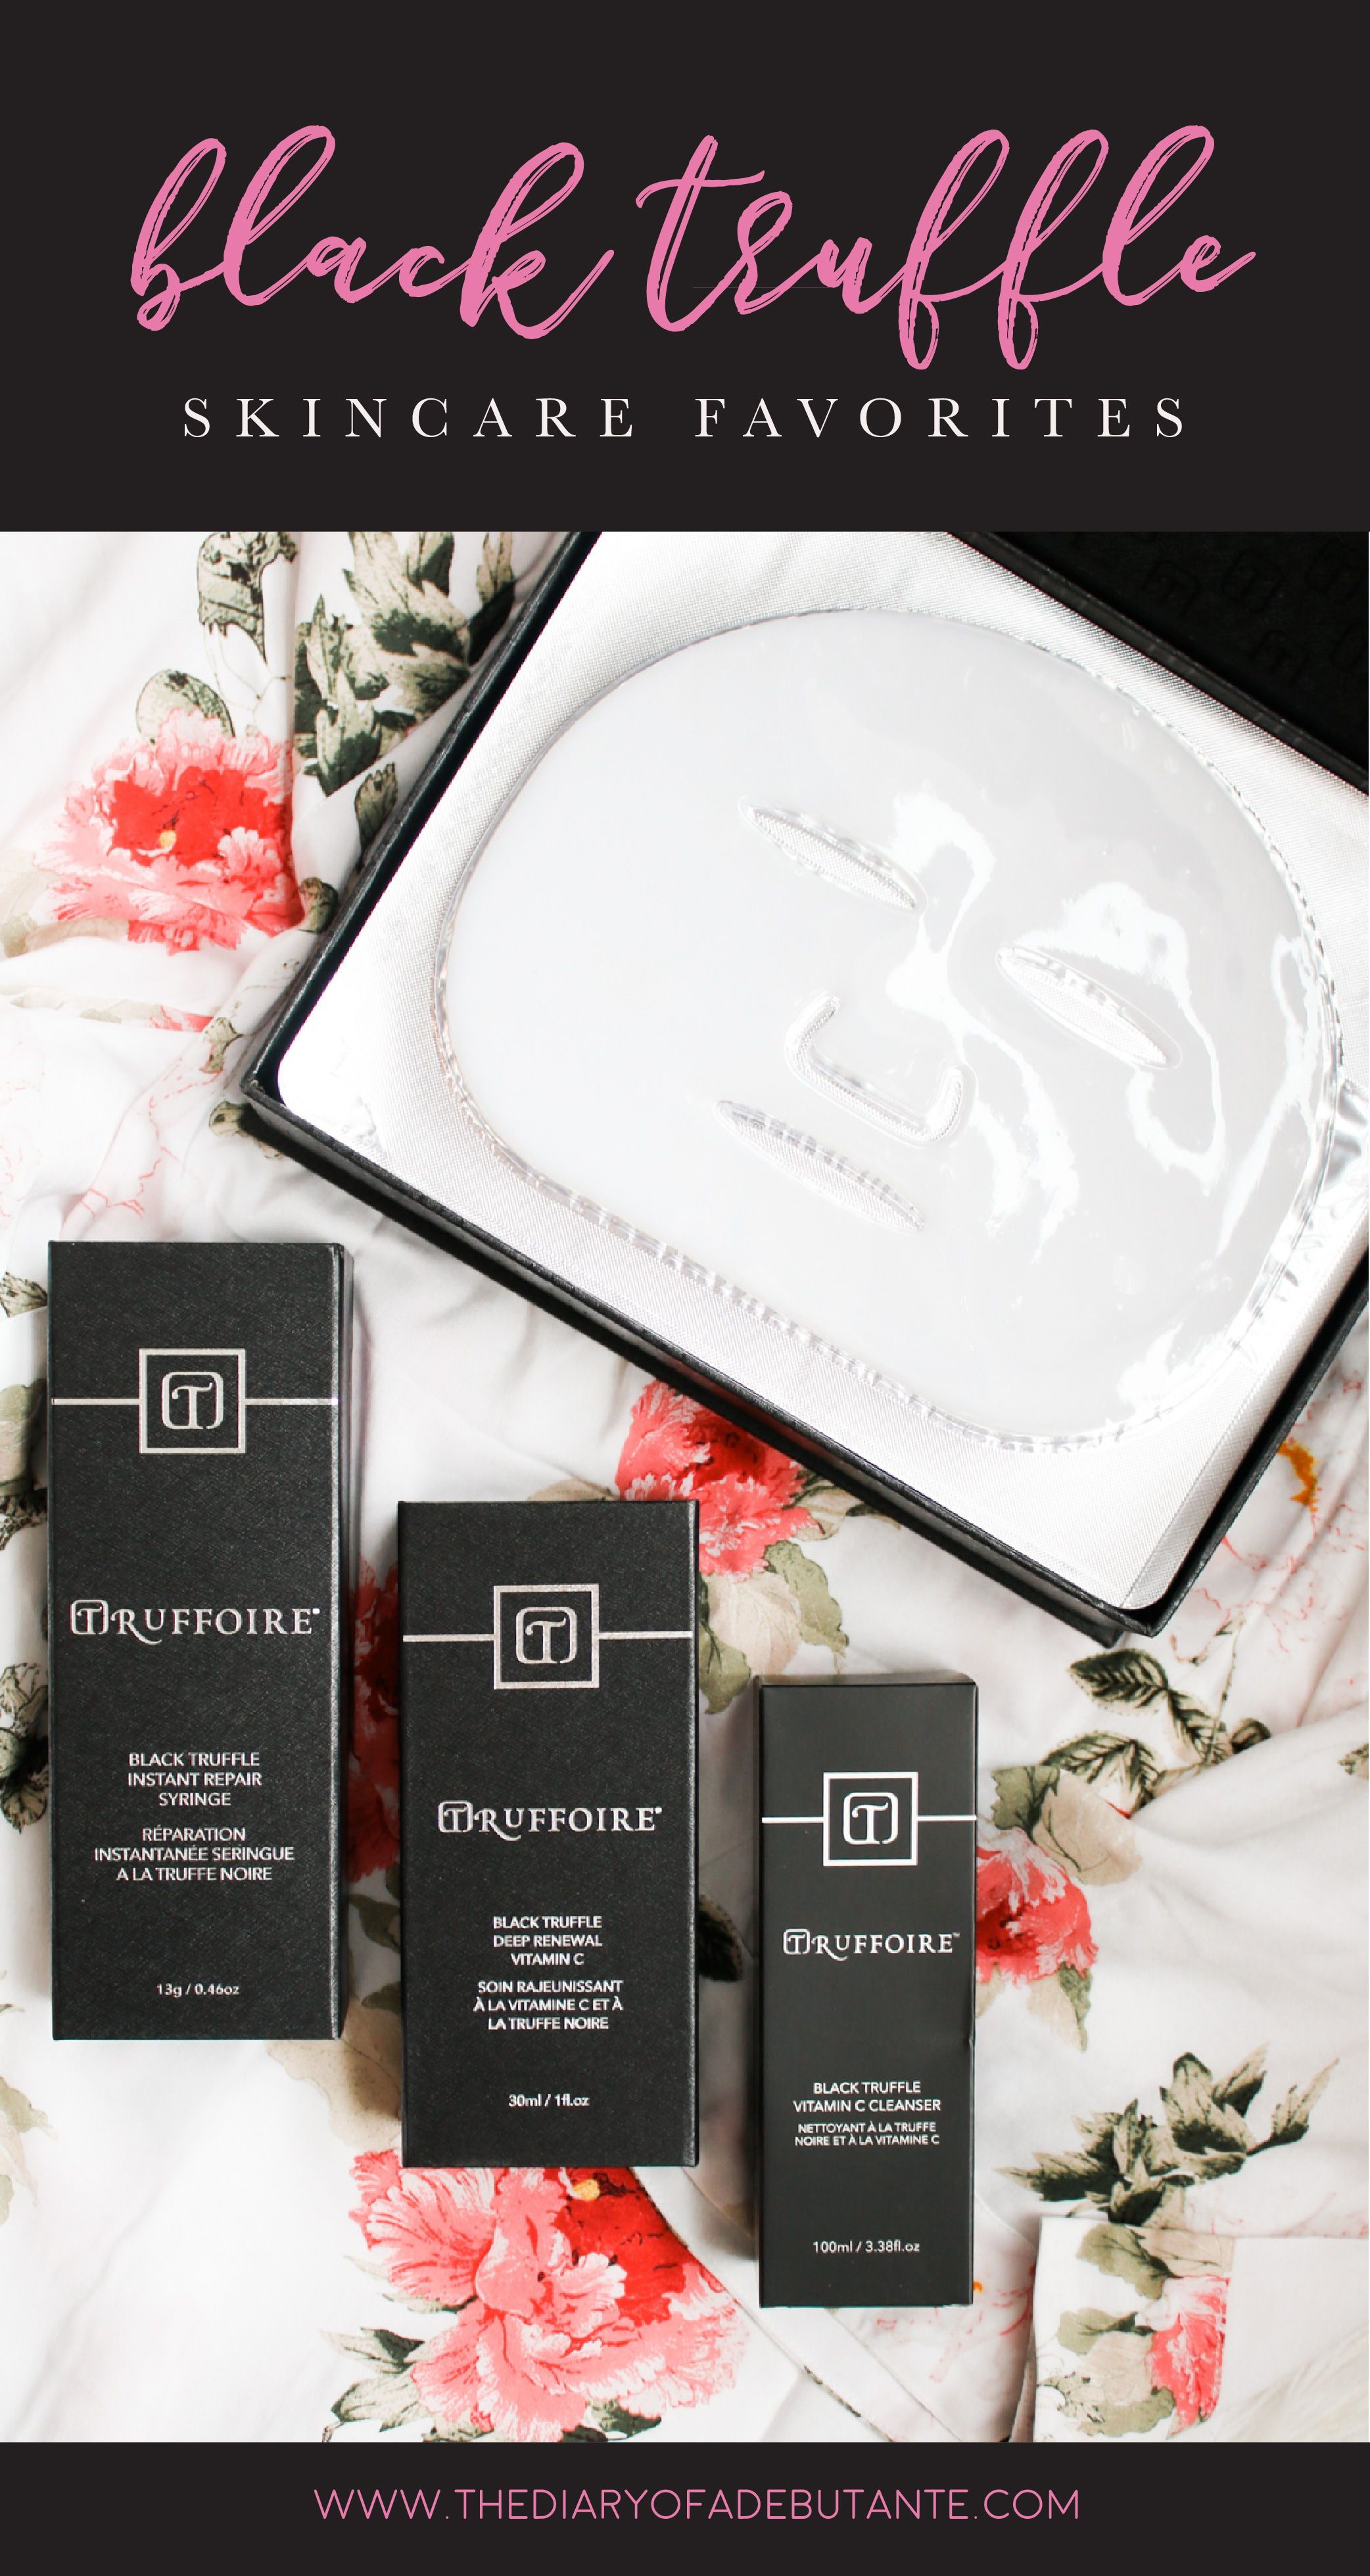 The Benefits Of Black Truffle Skincare And Truffoire Review In 2020 Beauty Products Drugstore Skin Care Black Truffle